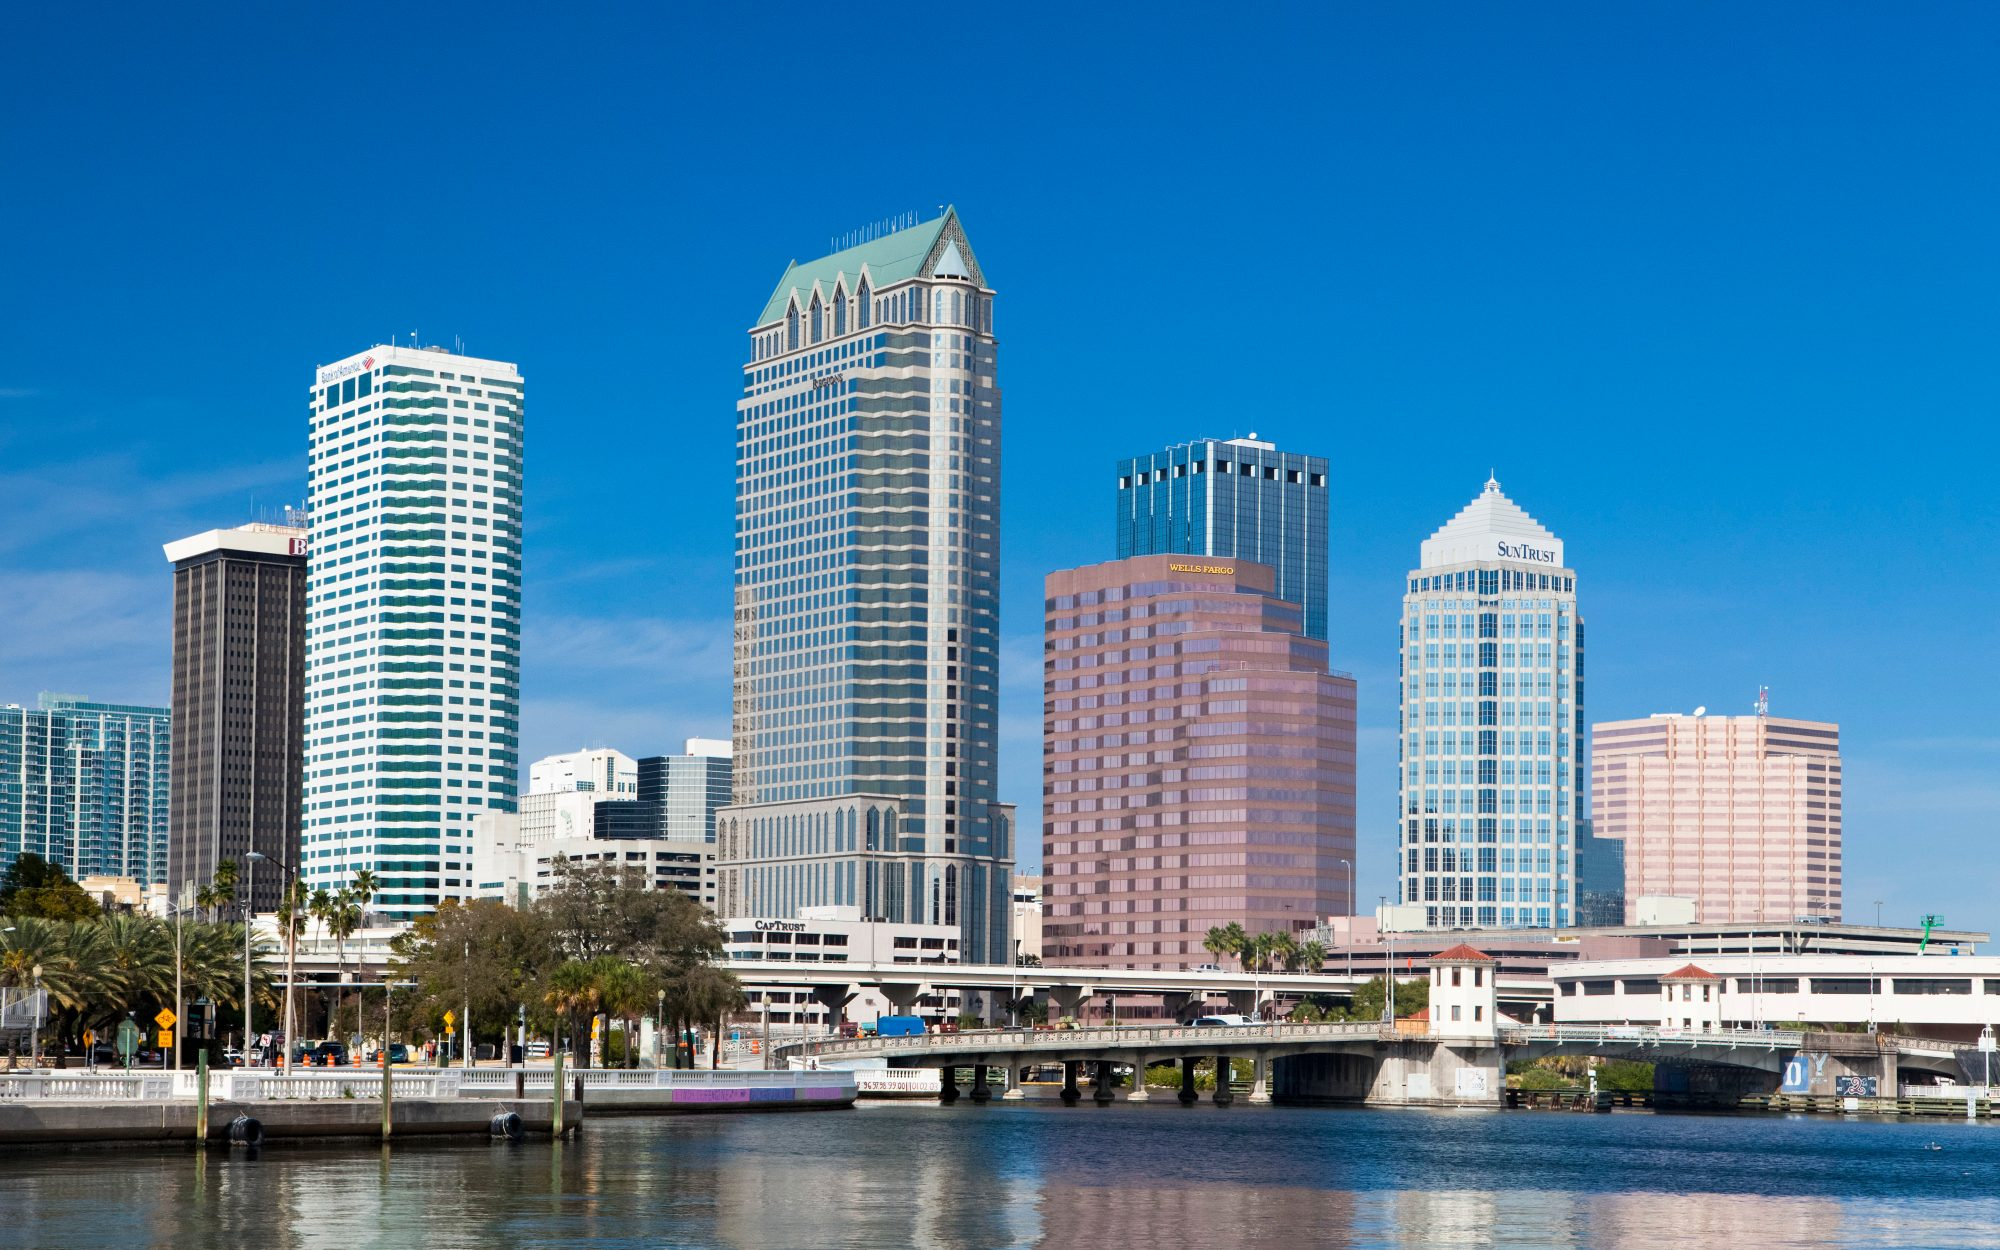 America's Most Romantic Cities: No. 9 Tampa, FL